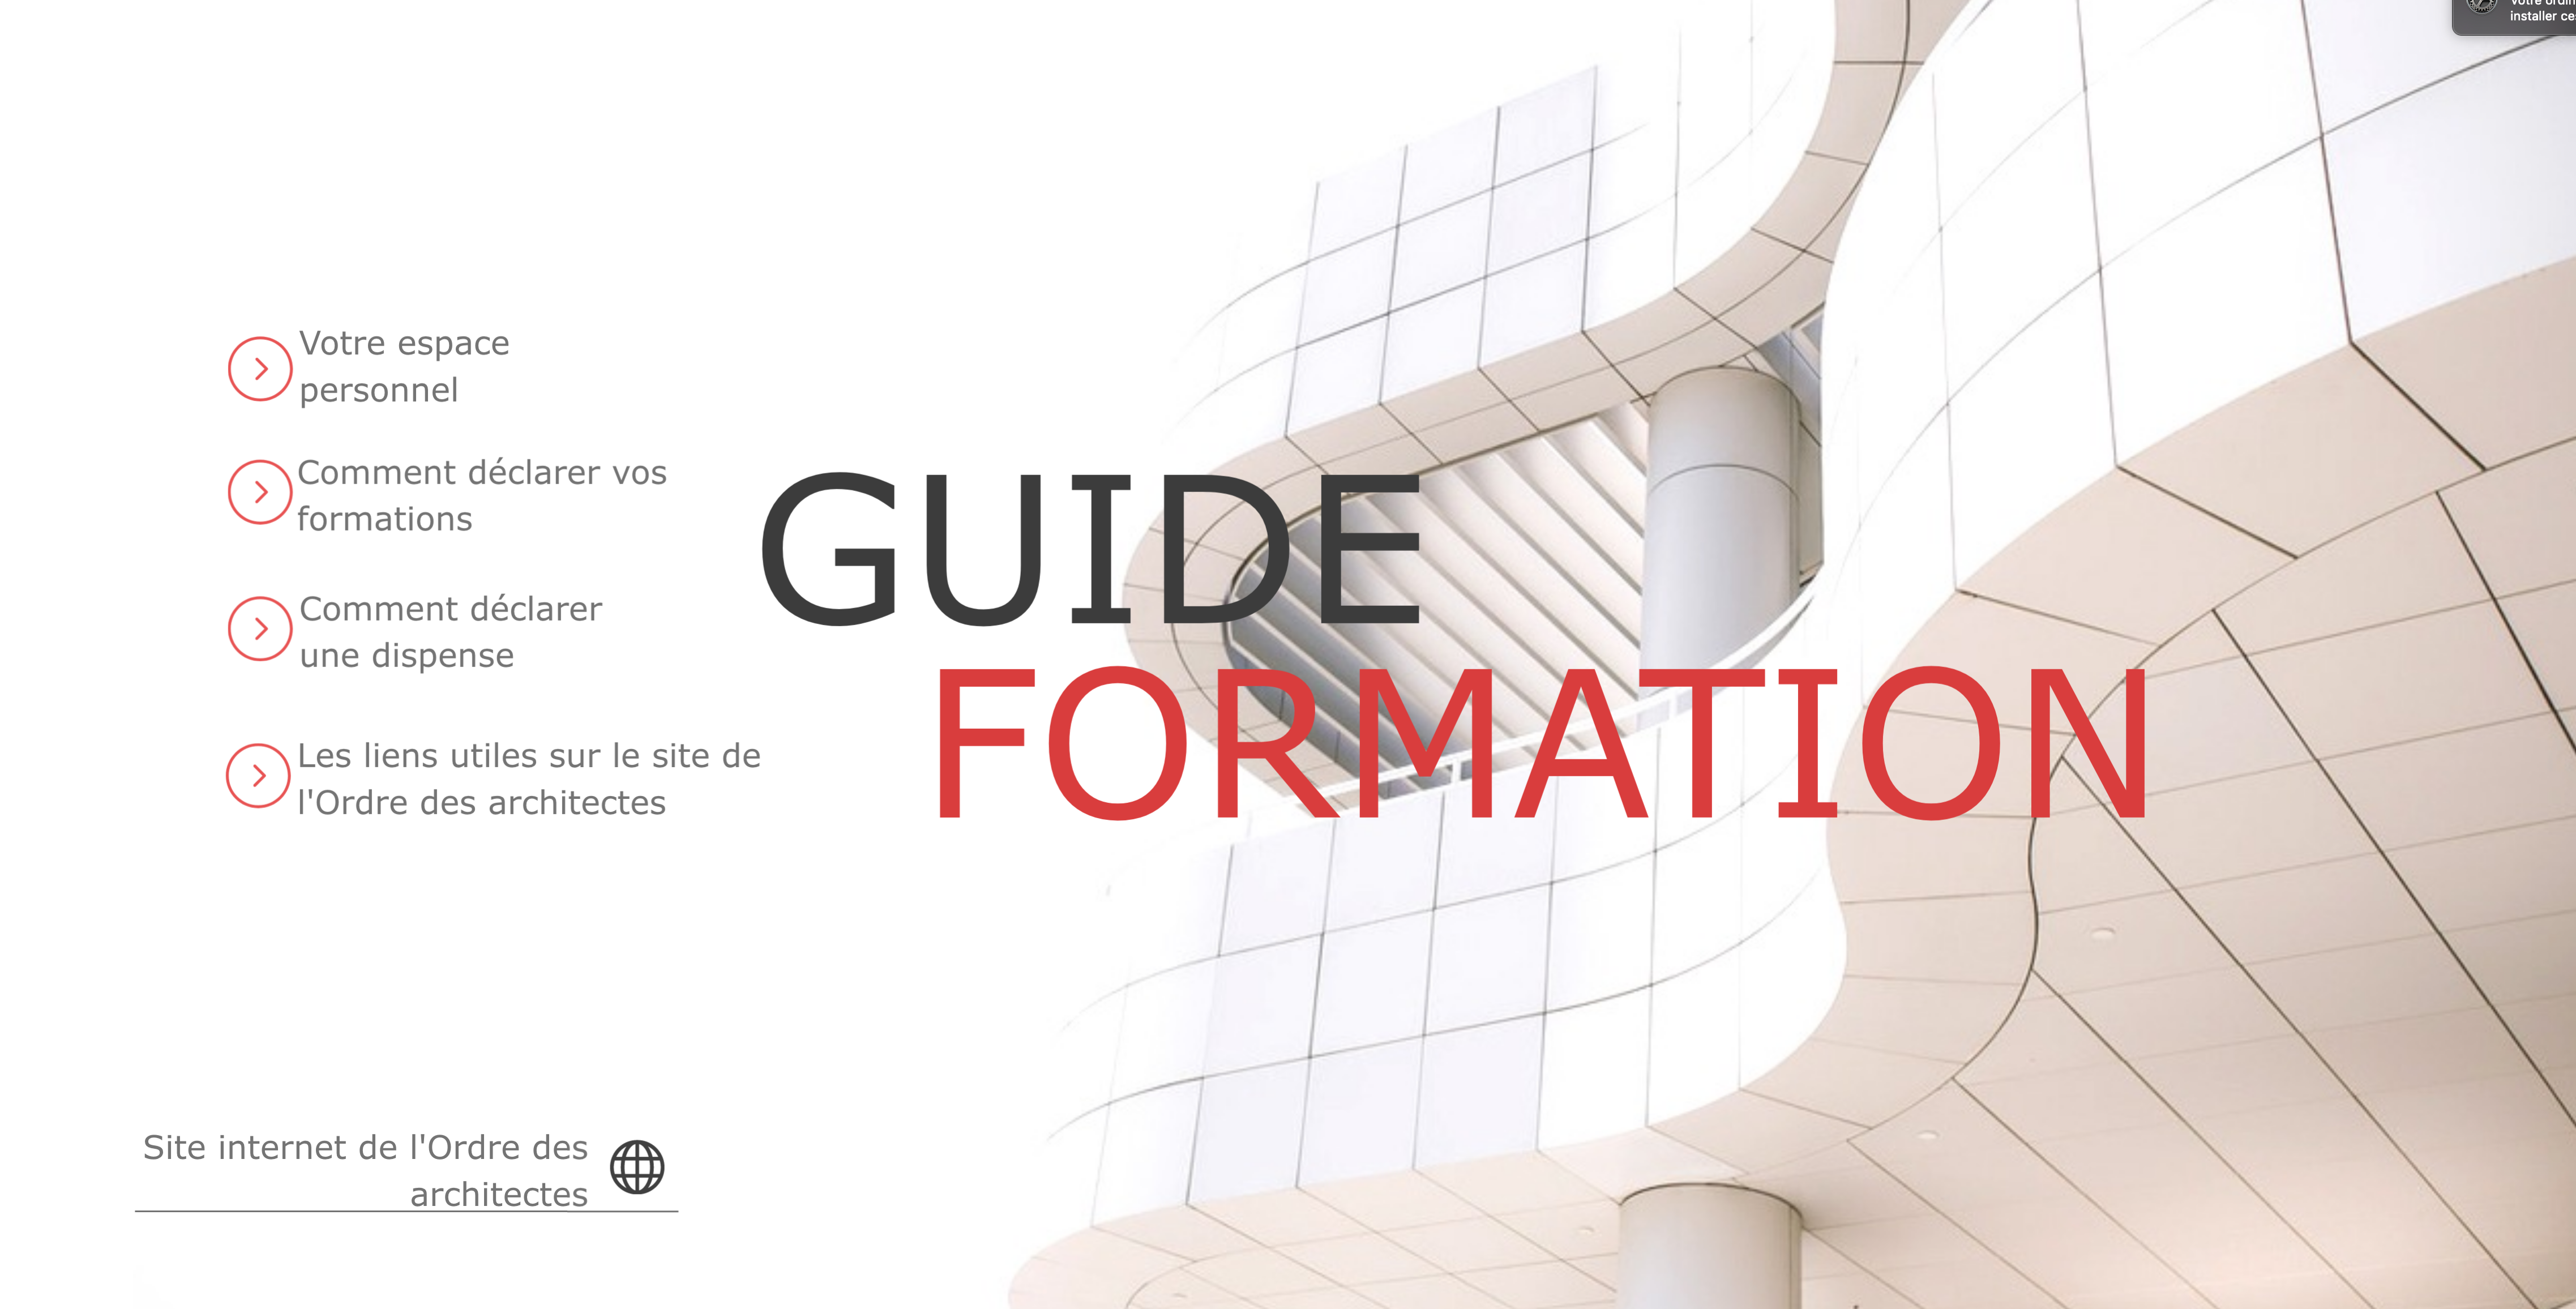 Guide formaion